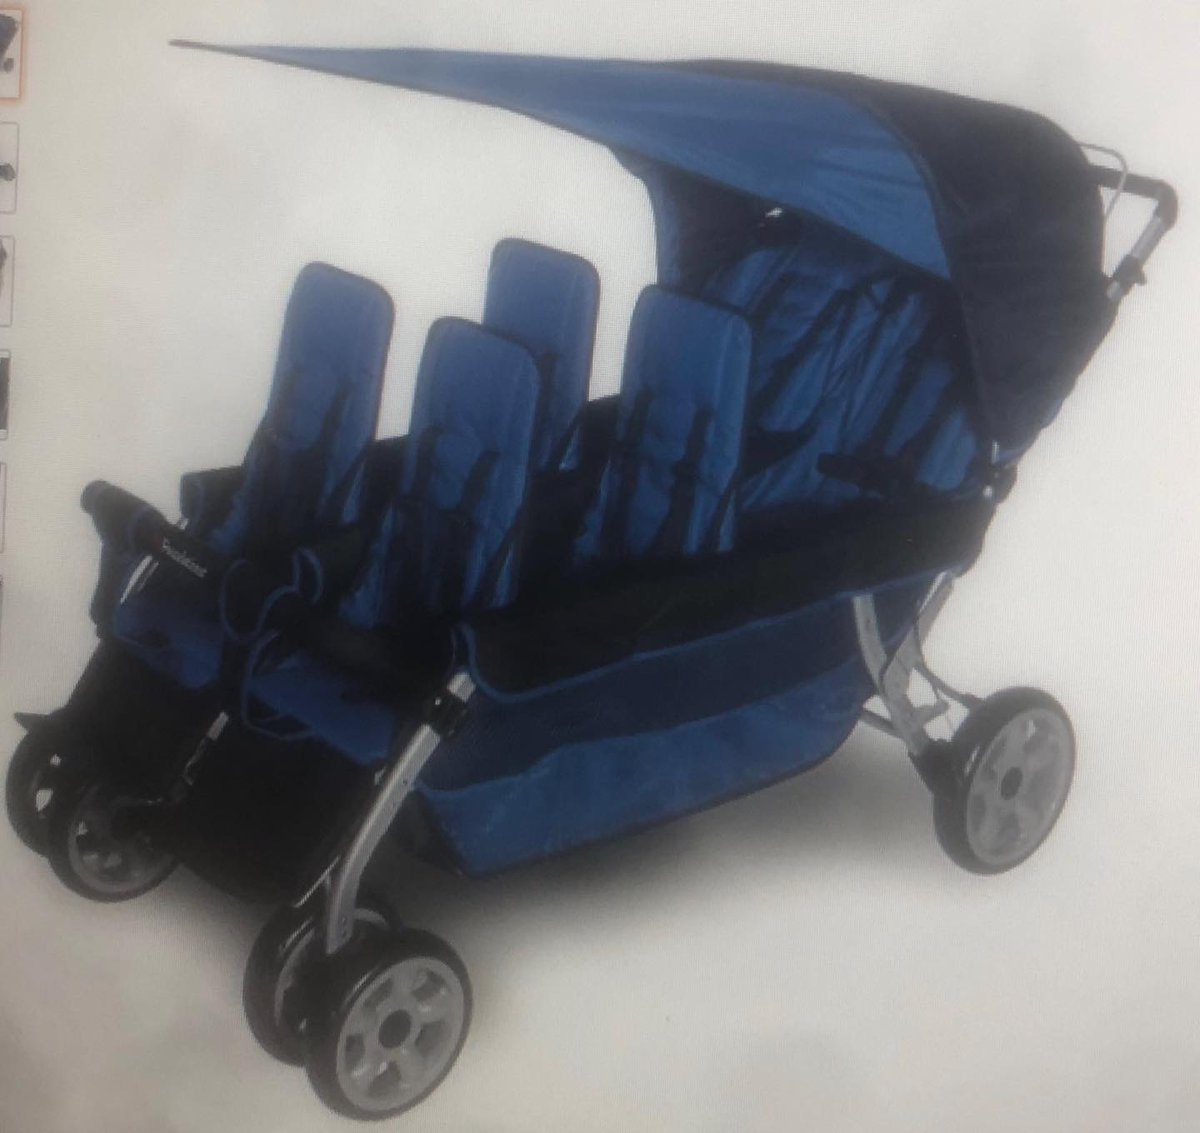 My daycare is halfway to raising enough money for this baby stroller We are collecting bottles If you have any you would like to donate we can come and pick up  (In Red Deer), or you can drop off. Help the babies be able to go for walks and adventures.  #fundraiser #daycare pic.twitter.com/cktSffvxEn